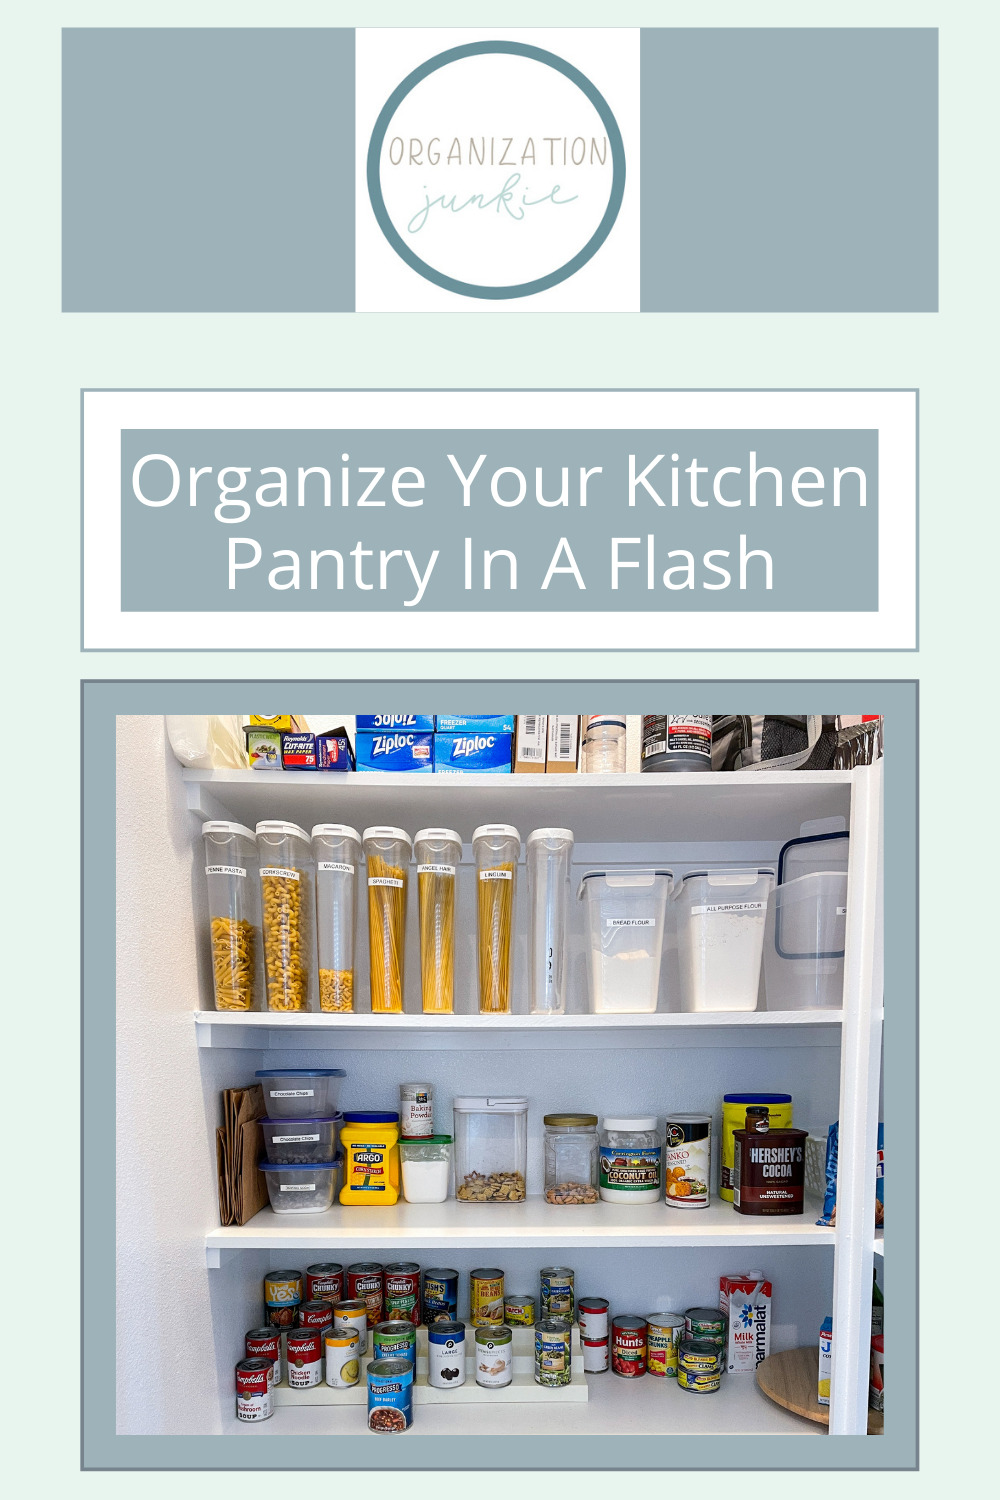 Organizationjunkie.com is stacked with creative ideas for keeping a clean and organized space. Find out how you can wipe out clutter in an instant. These clever ideas will have your kitchen pantry totally organized in no time!